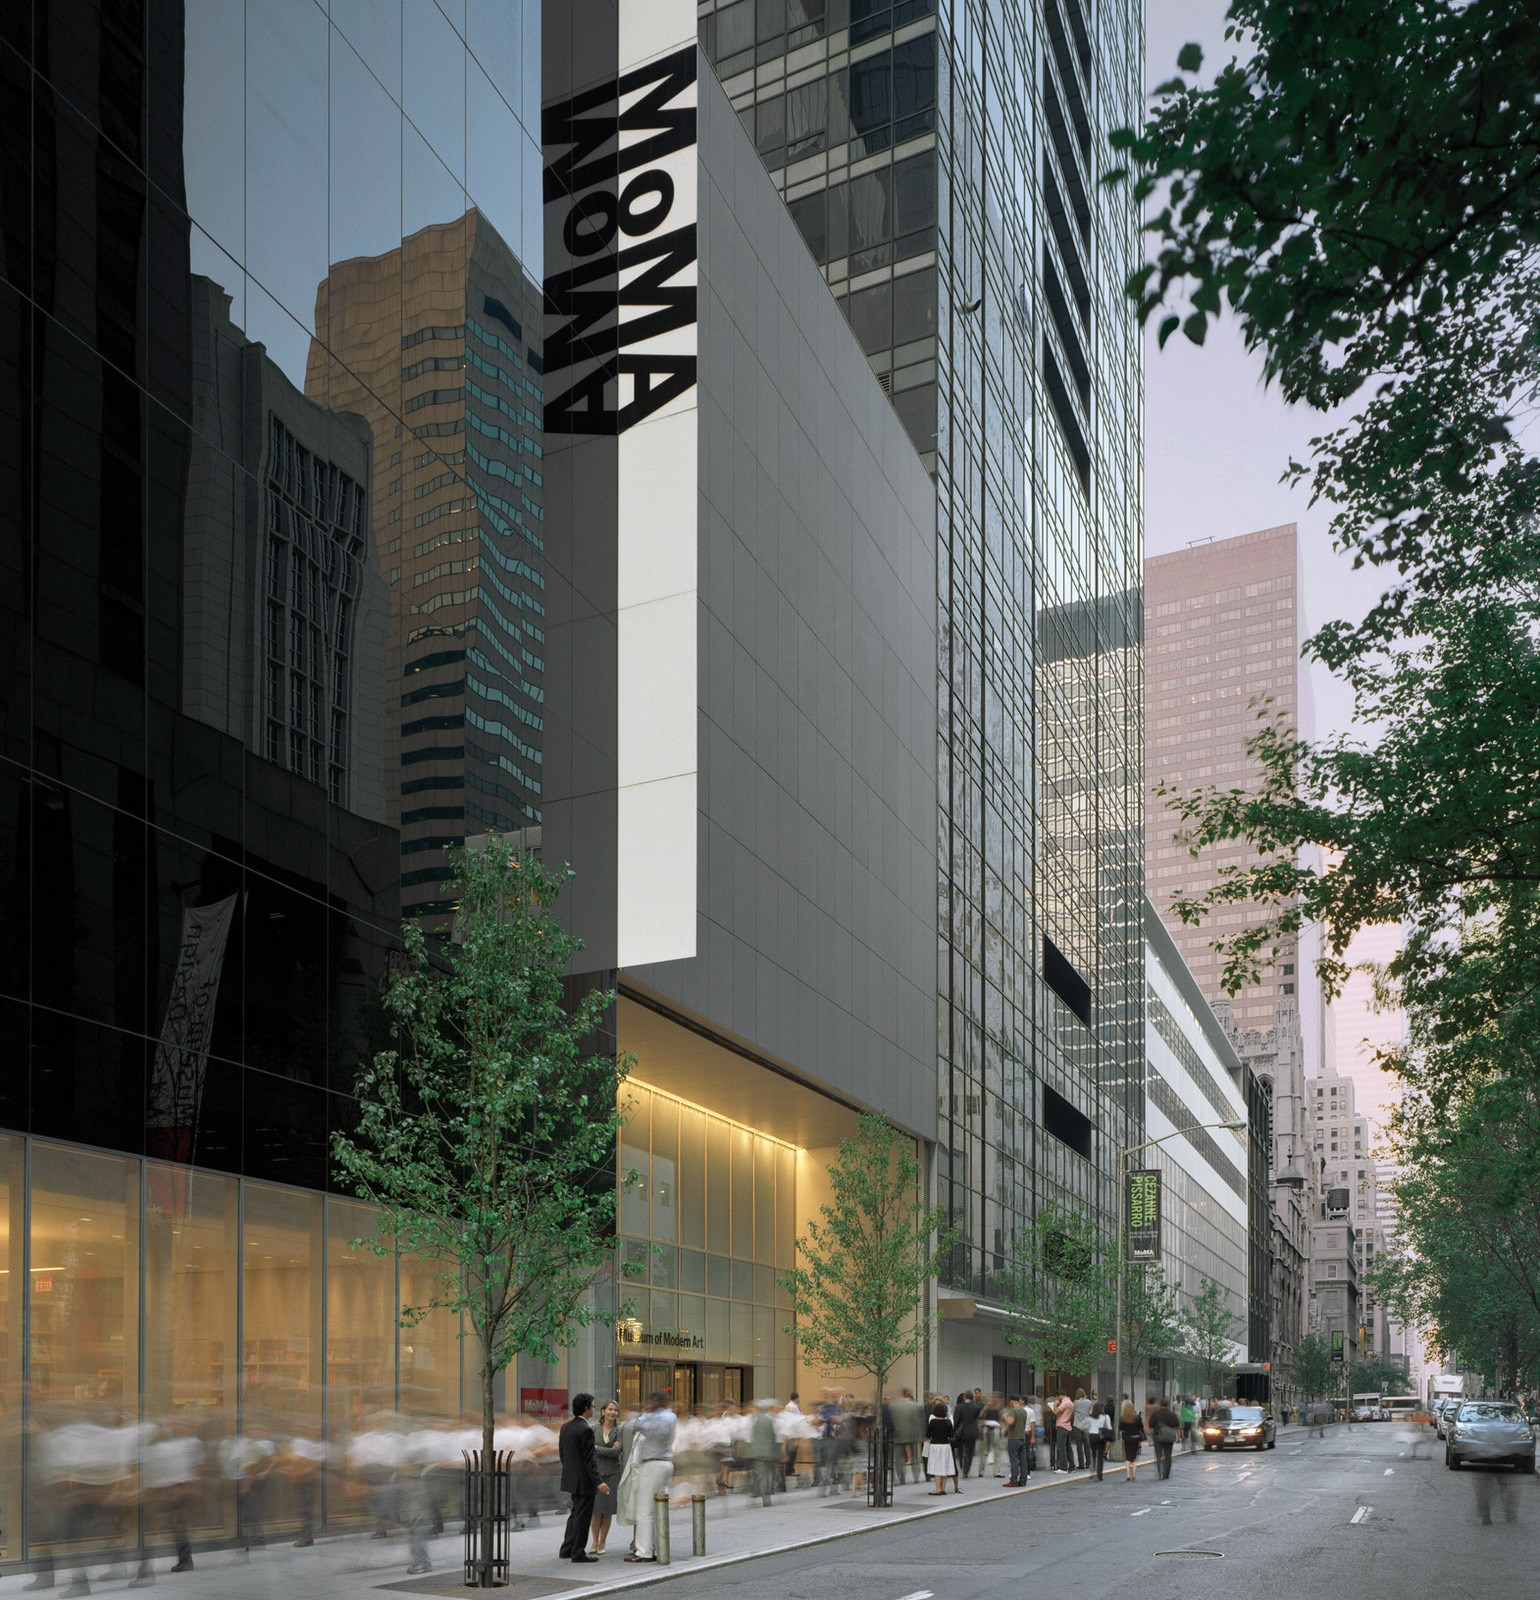 MoMA will Close this Summer as Part of Expansion Plan